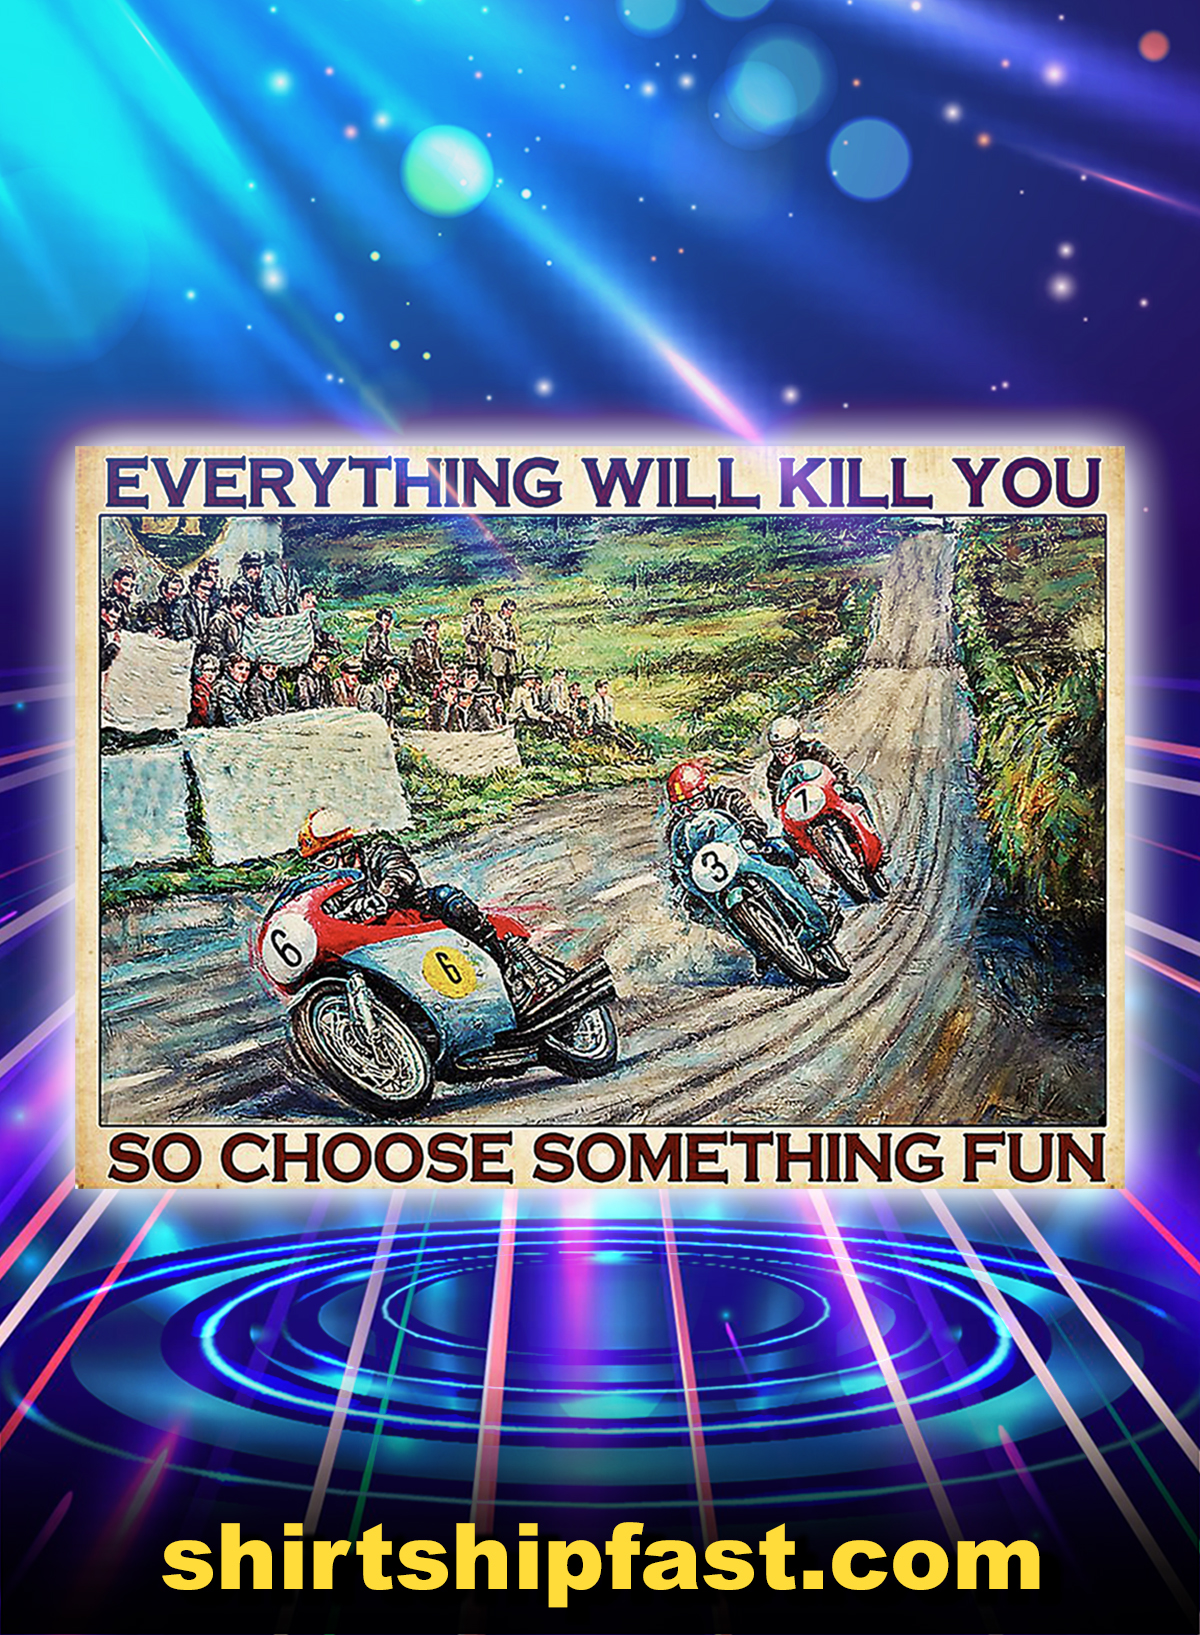 Isle of man everything will kill you so choose something fun poster - A1